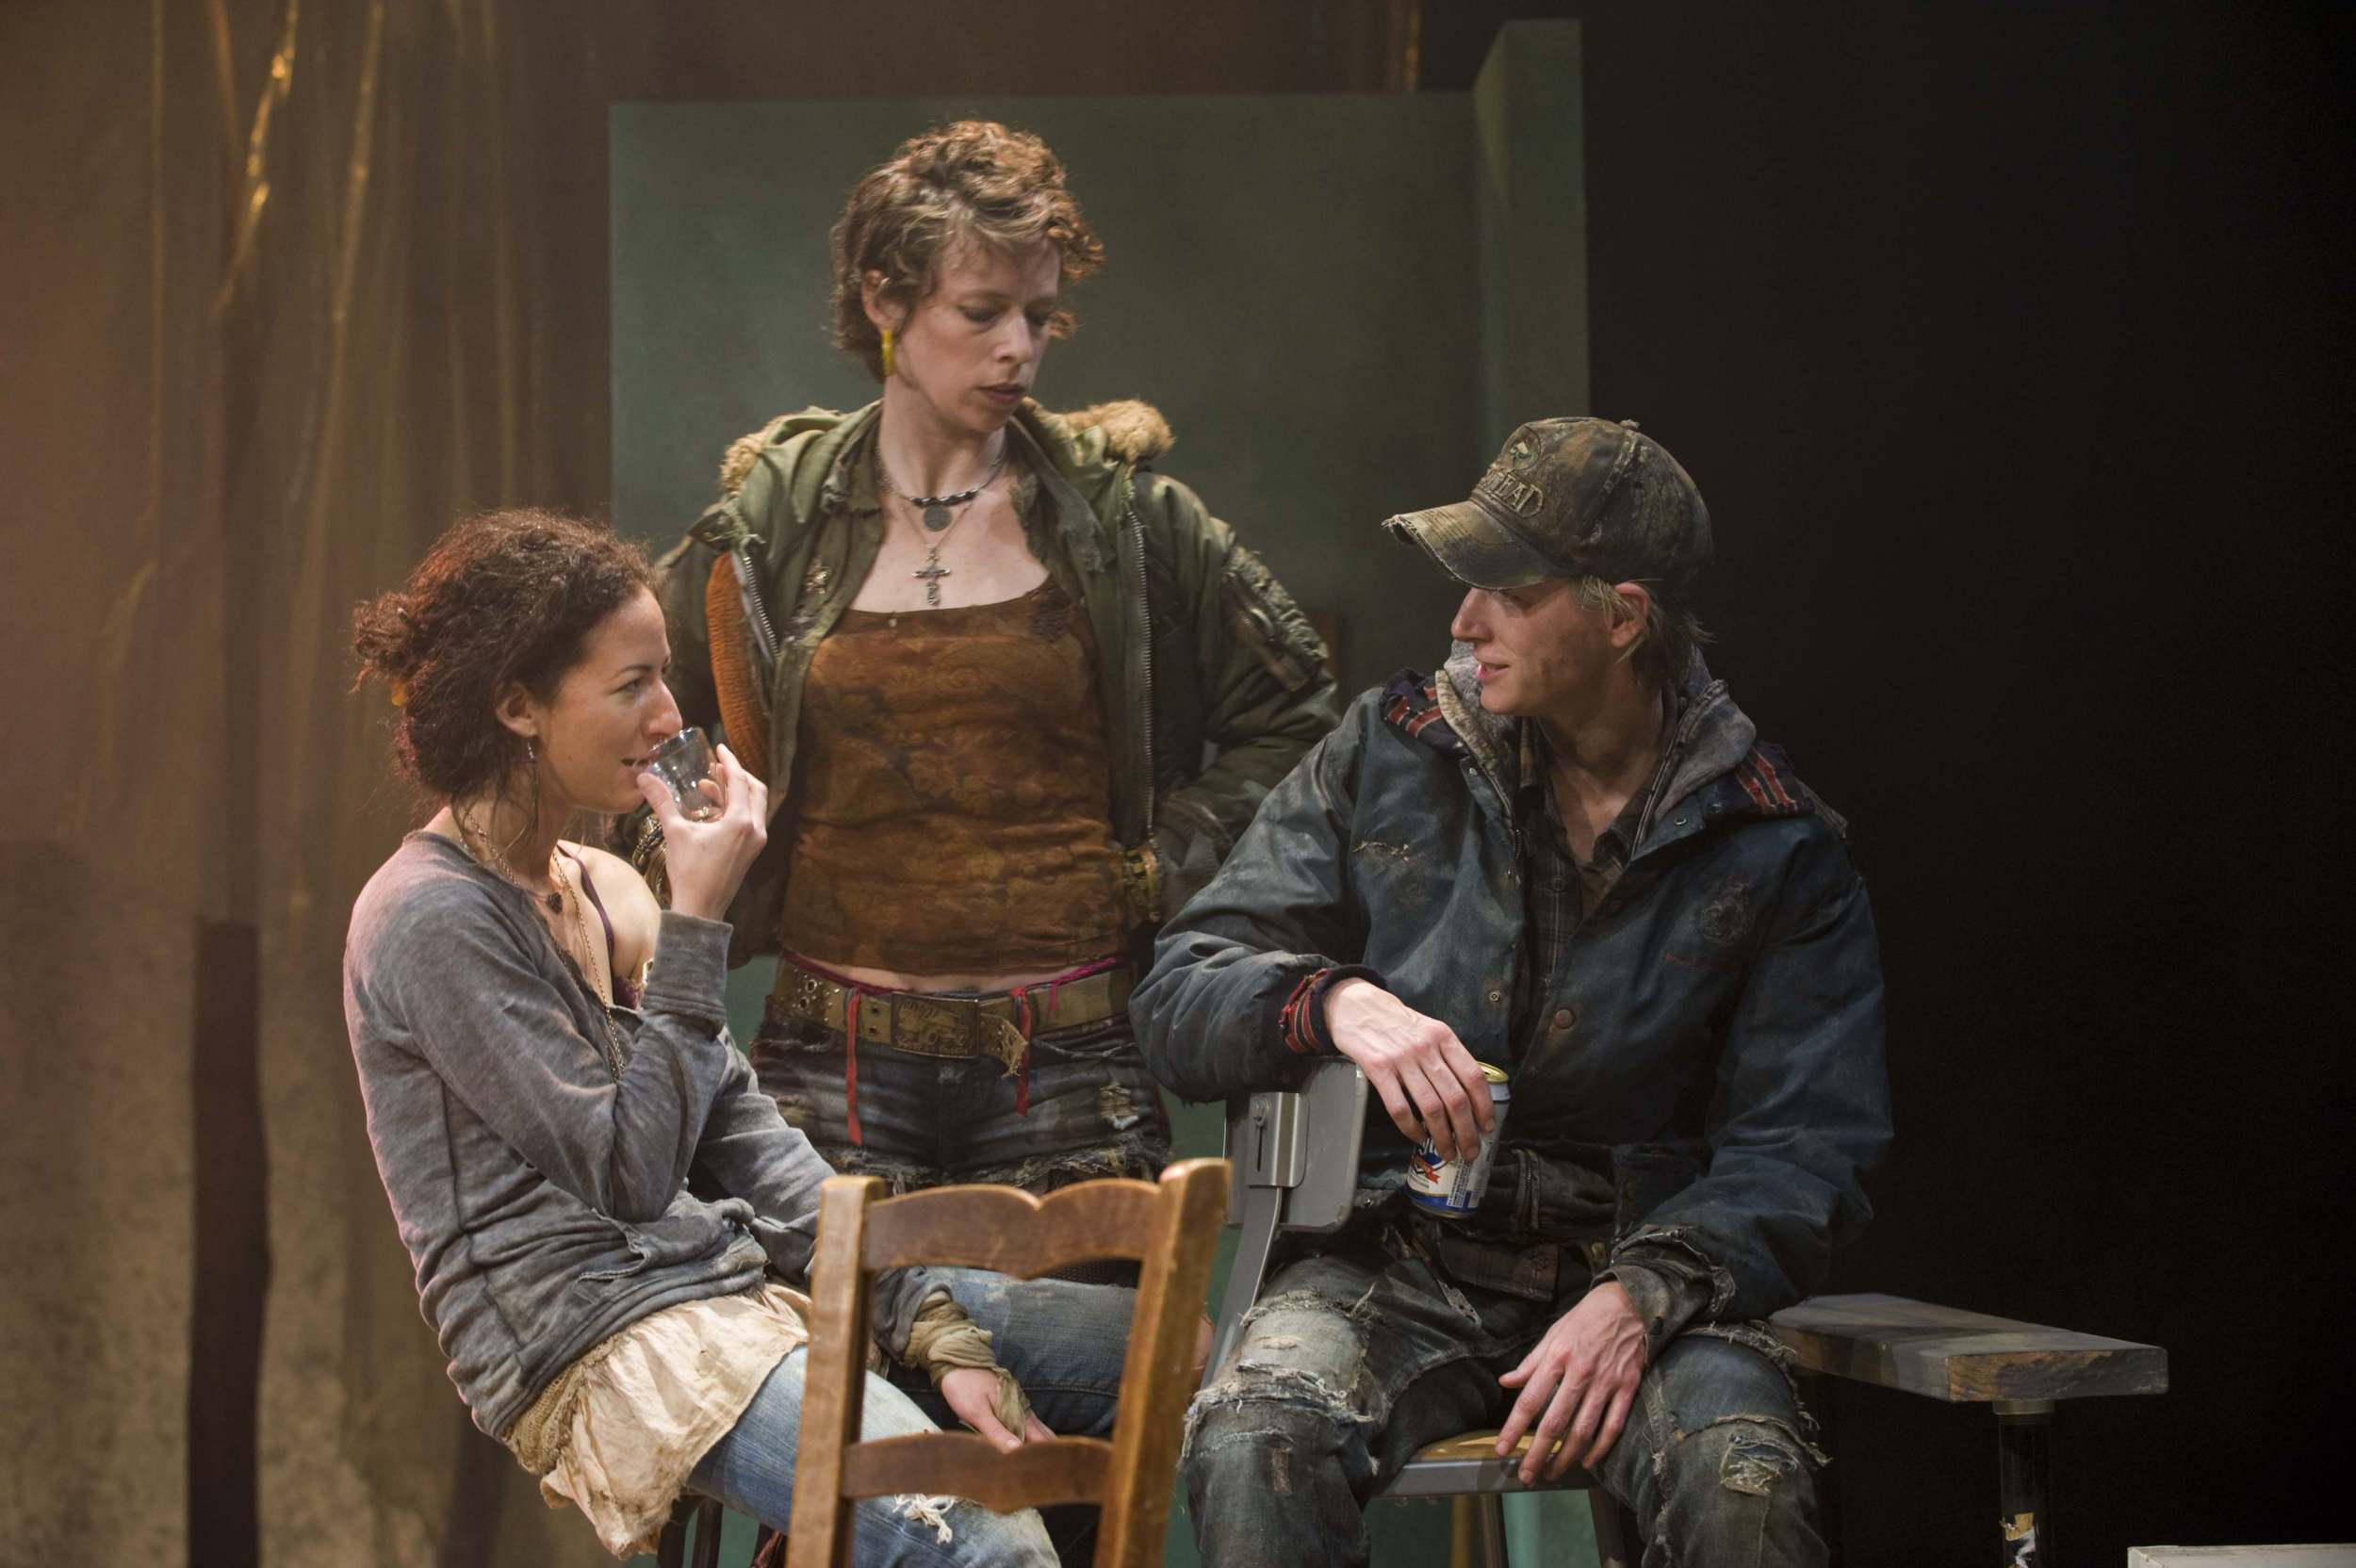 L-R  Kristina Valada-Viars, Jessica Hudson, and Kelli Simpkins in the About Face Theatre Production directed by Bonnie Metzgar. Costumes by David Hyman, Set Design by Tom Burch, Lighting Design by Lee Fiskness.   Photo by Michael Brosilow.